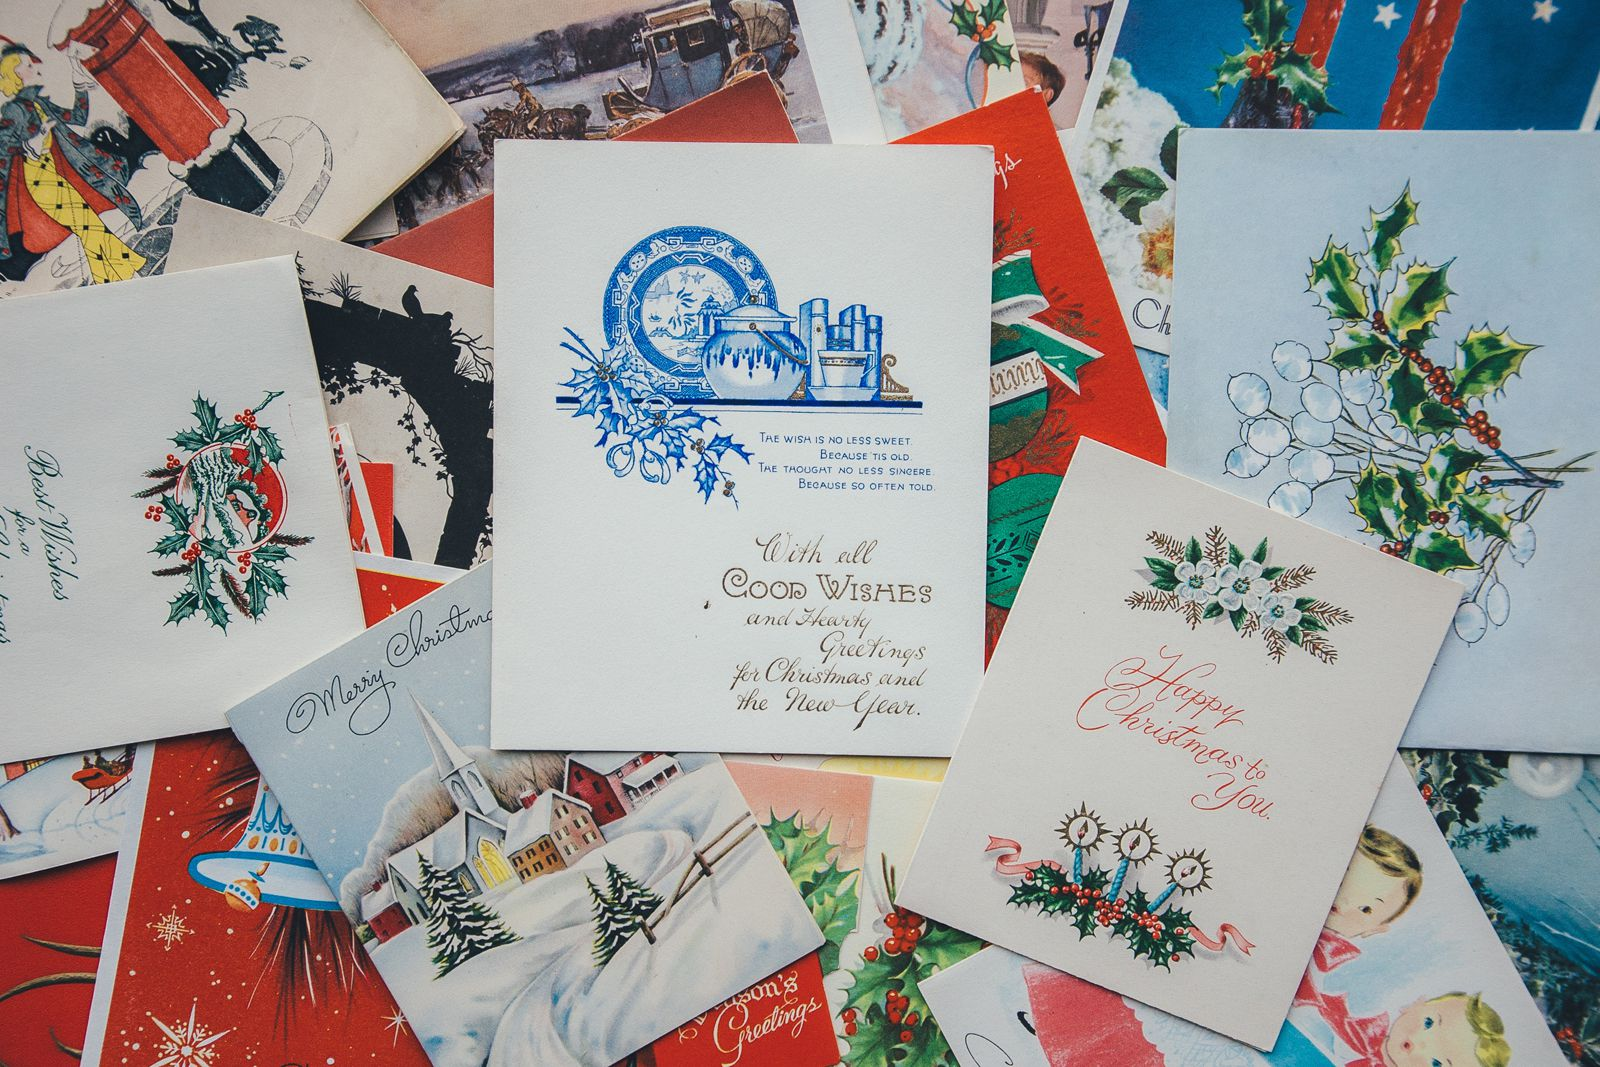 Production Game - Image of Christmas greeting cards